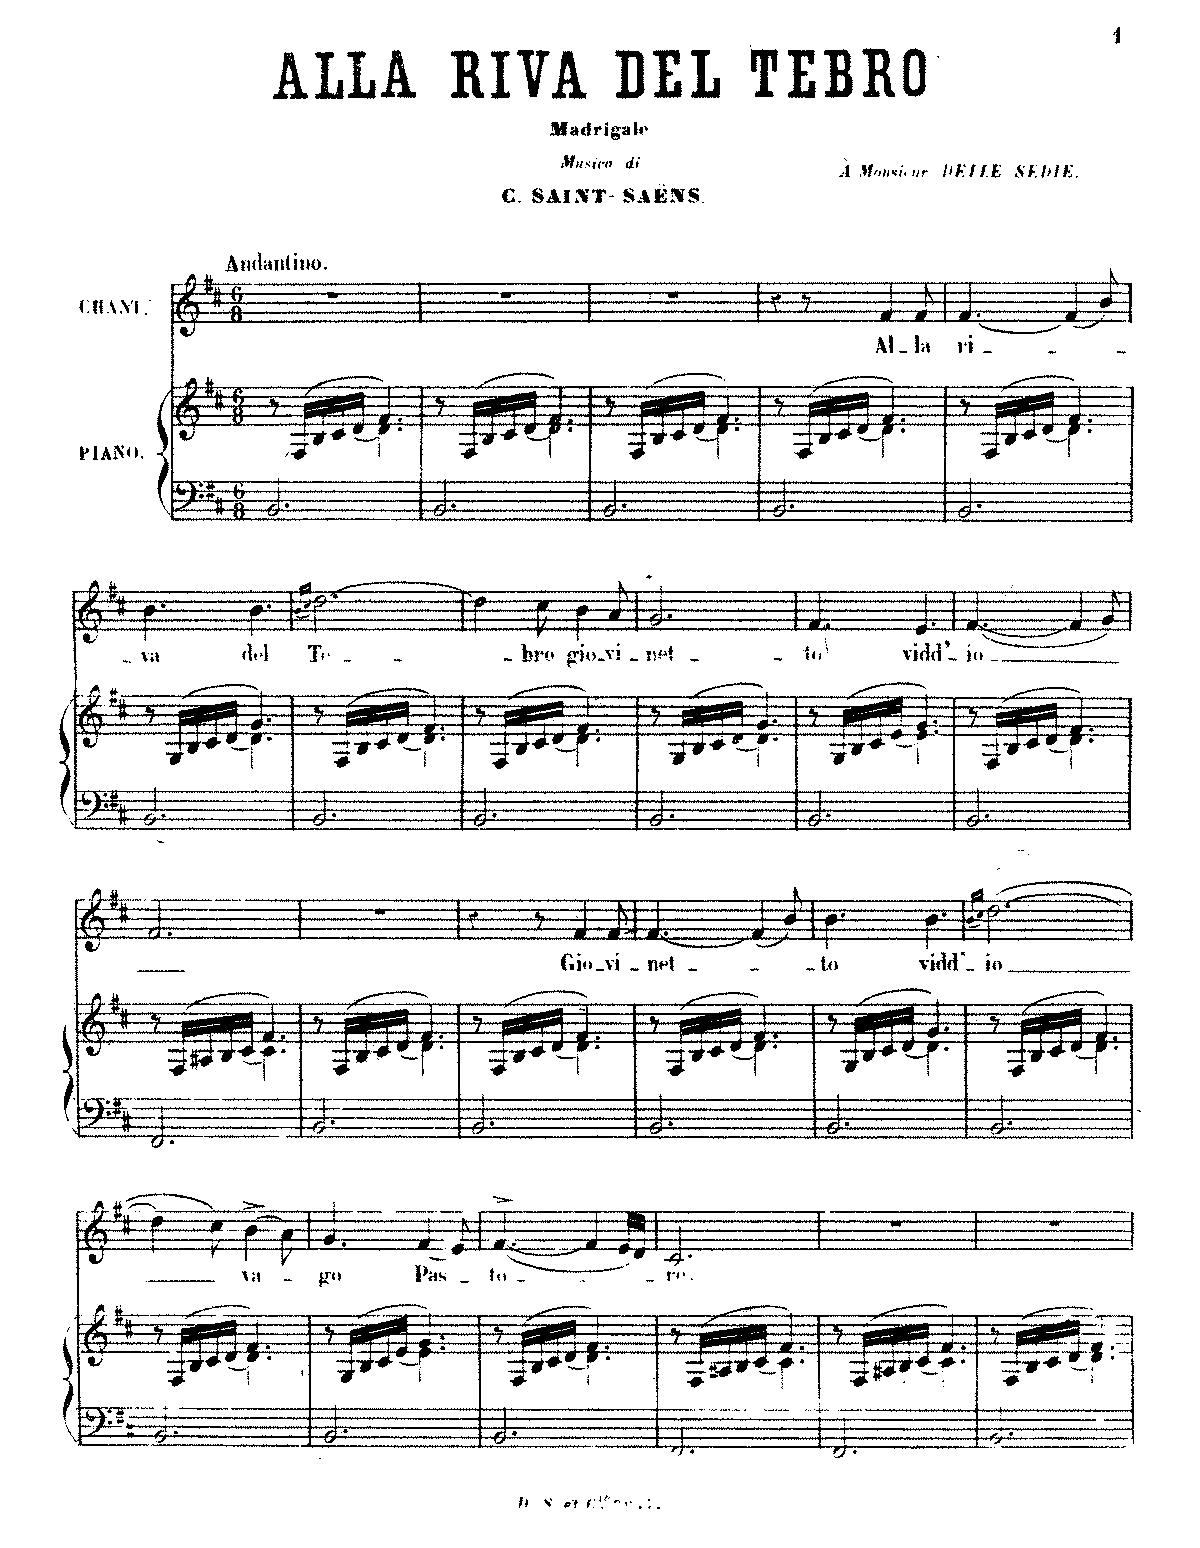 PMLP132238-Saint-Saëns - Alla riva del tebro (voice and piano).pdf